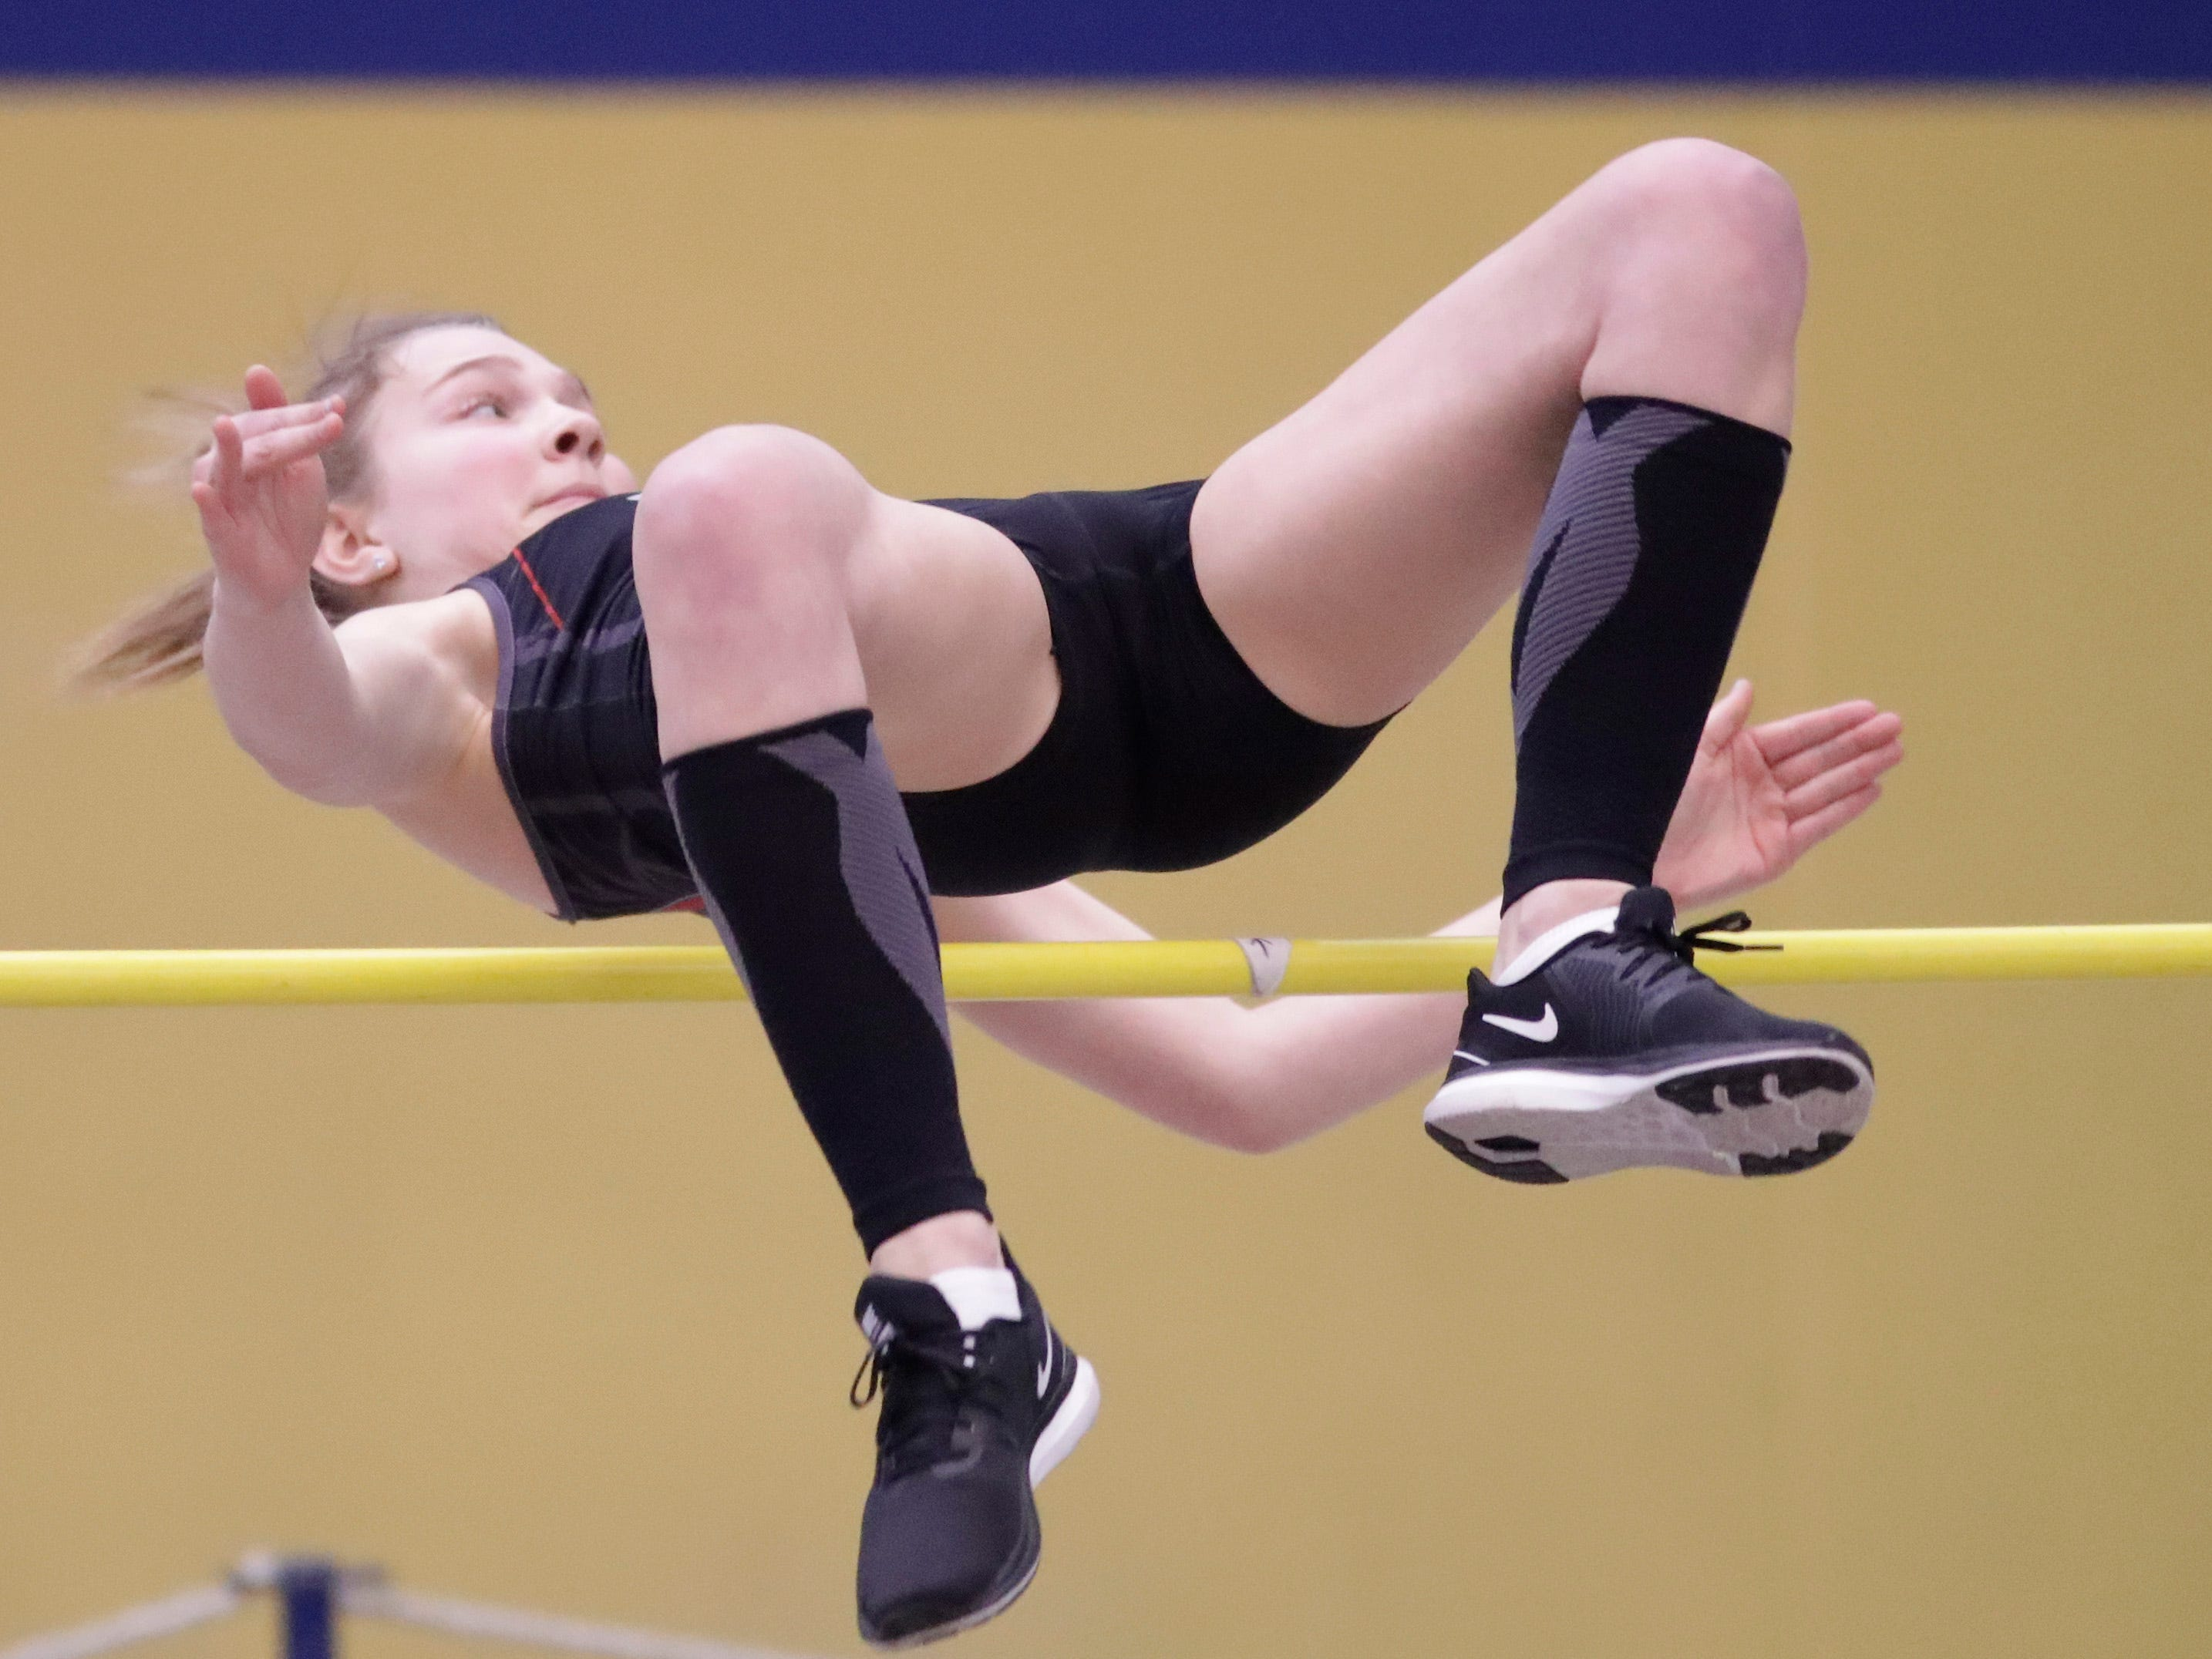 Manitowoc Lincoln's Madalynn Buchner clears the bar at the Sheboygan North Invite track meet, Tuesday, April 2, 2019, in Sheboygan, Wis.